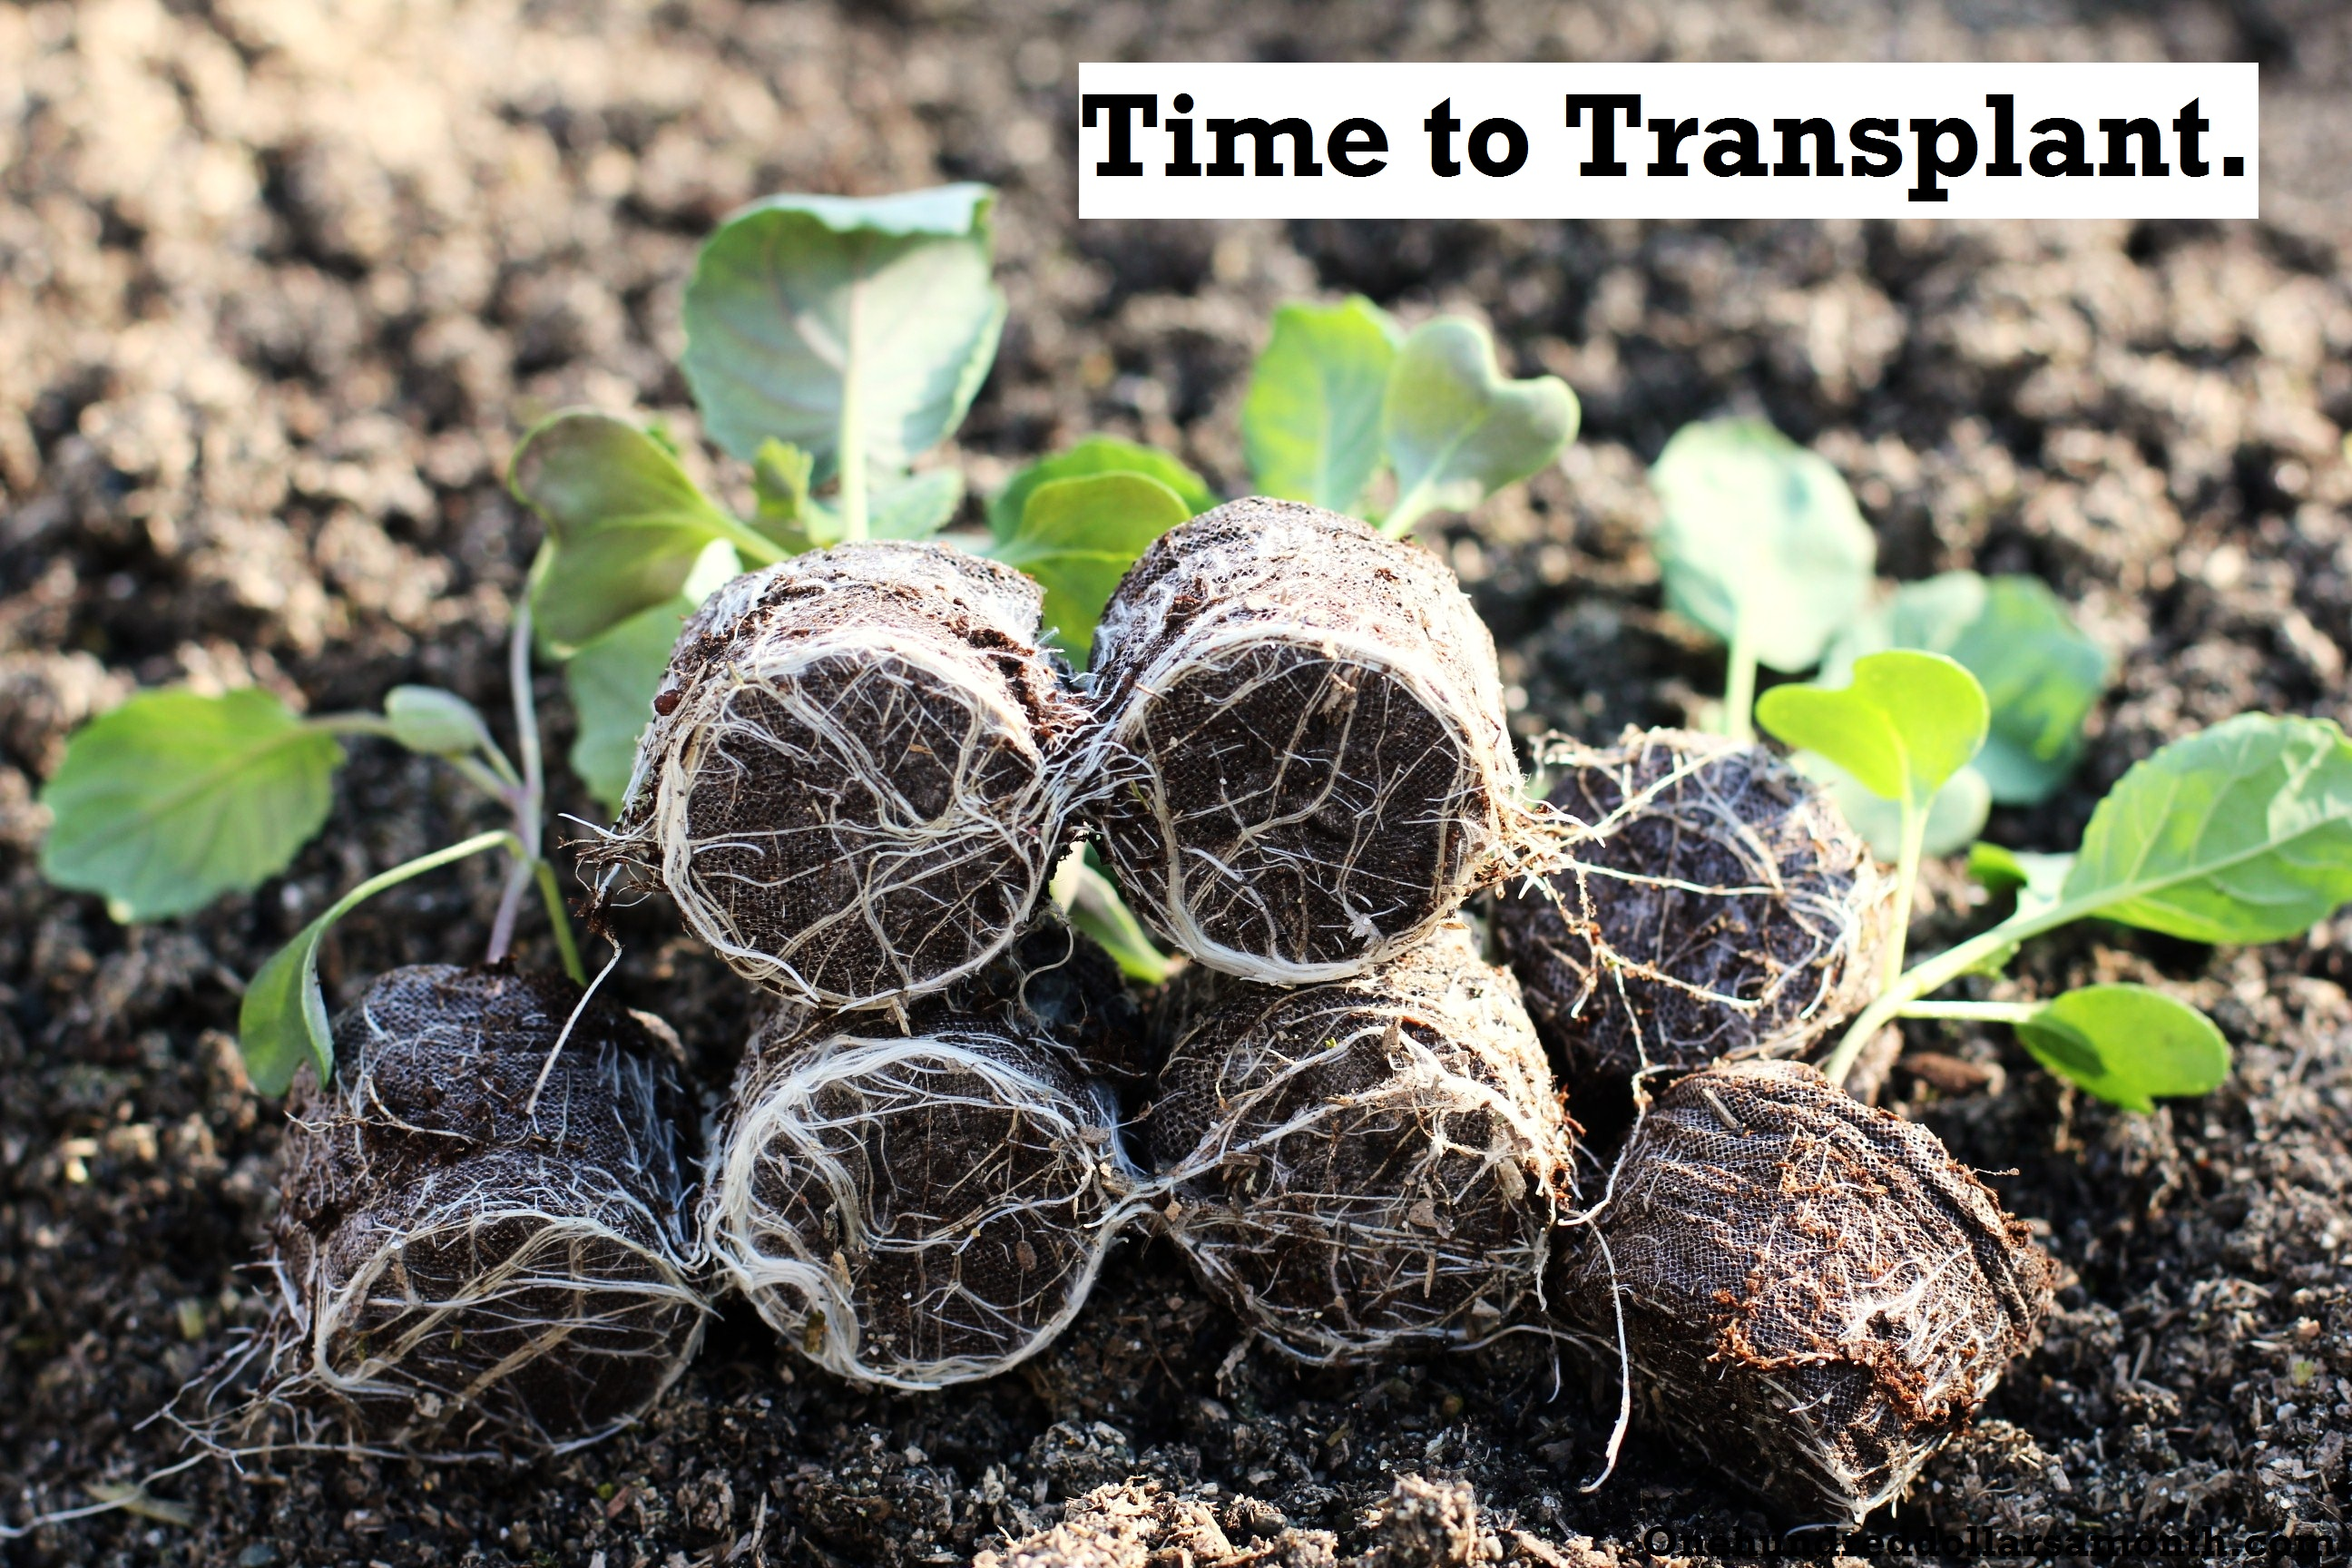 How to Grow Your Own Food: Transplanting Seedlings to the Garden